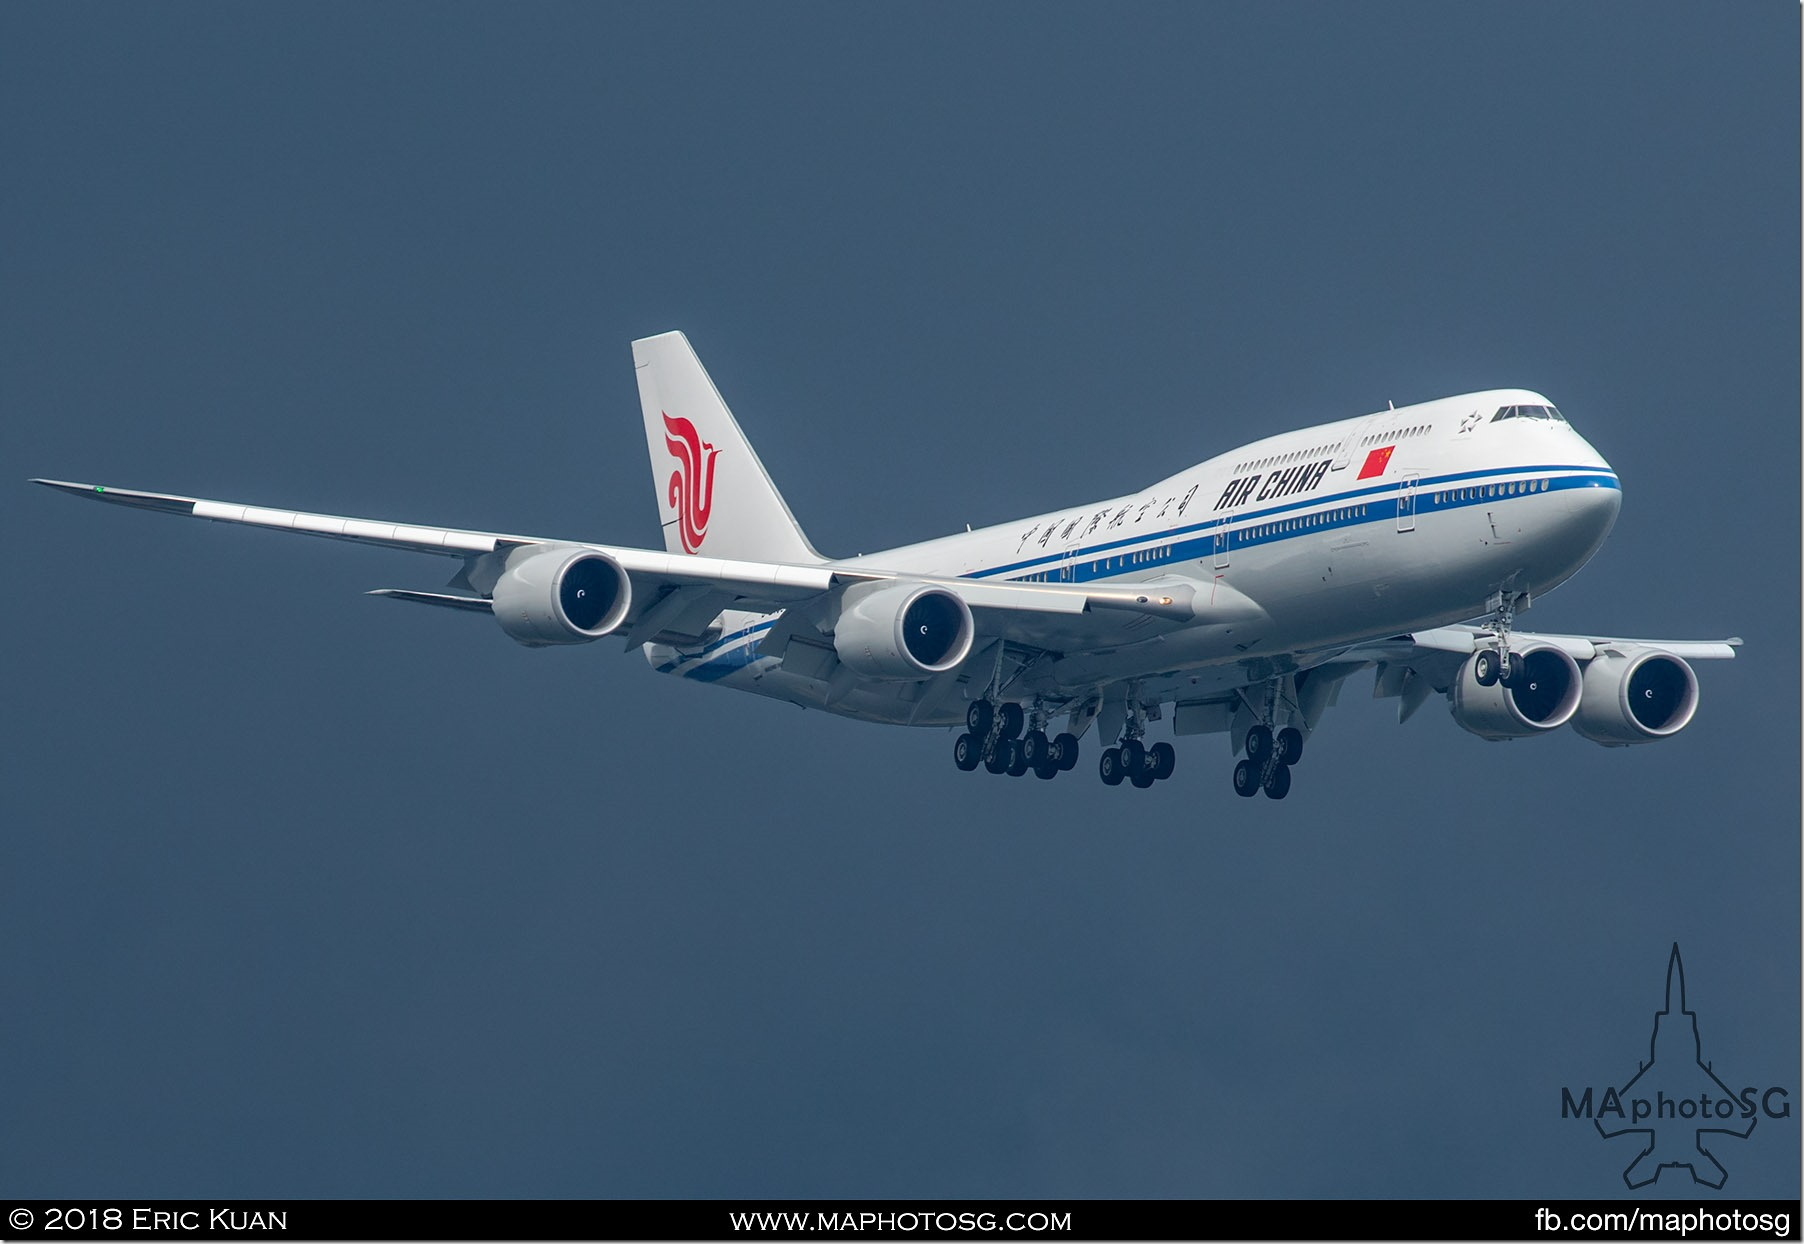 01. Ferrying Premier Li Keqiang is the Air China Boeing 747